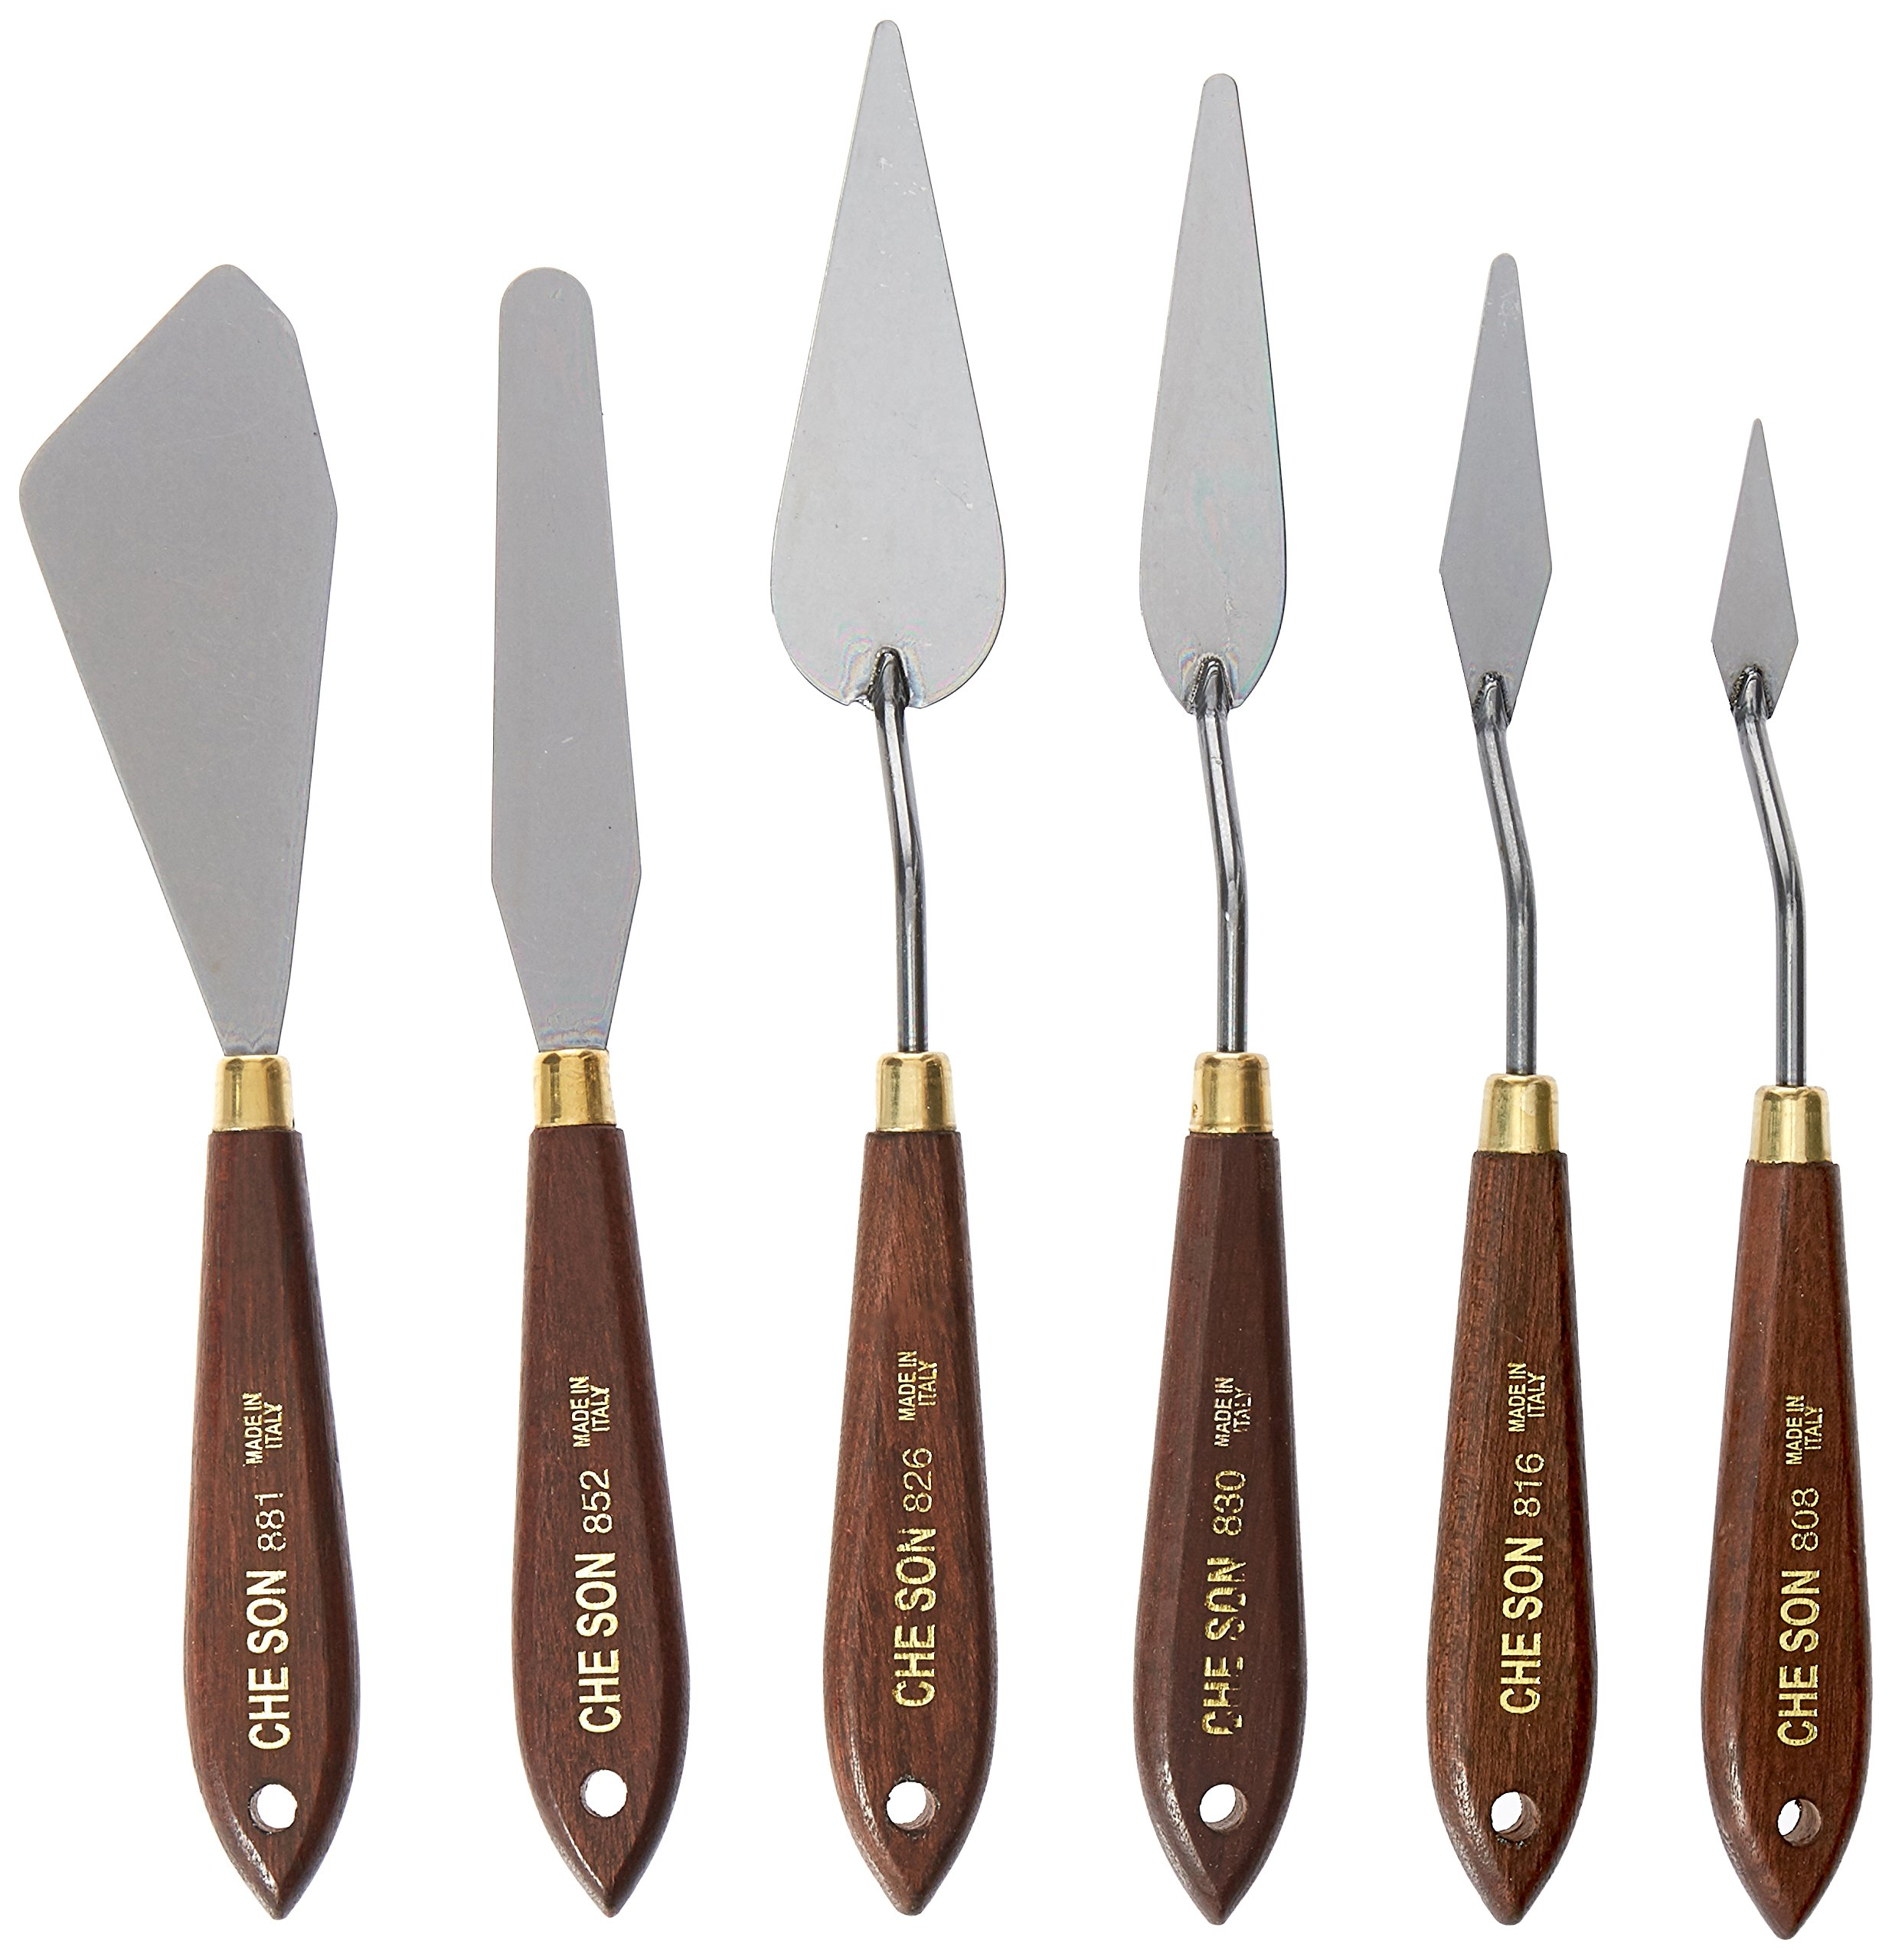 Jack Richeson Italian Knife Professional Artist Series in Wooden Storage Box, Set of 6